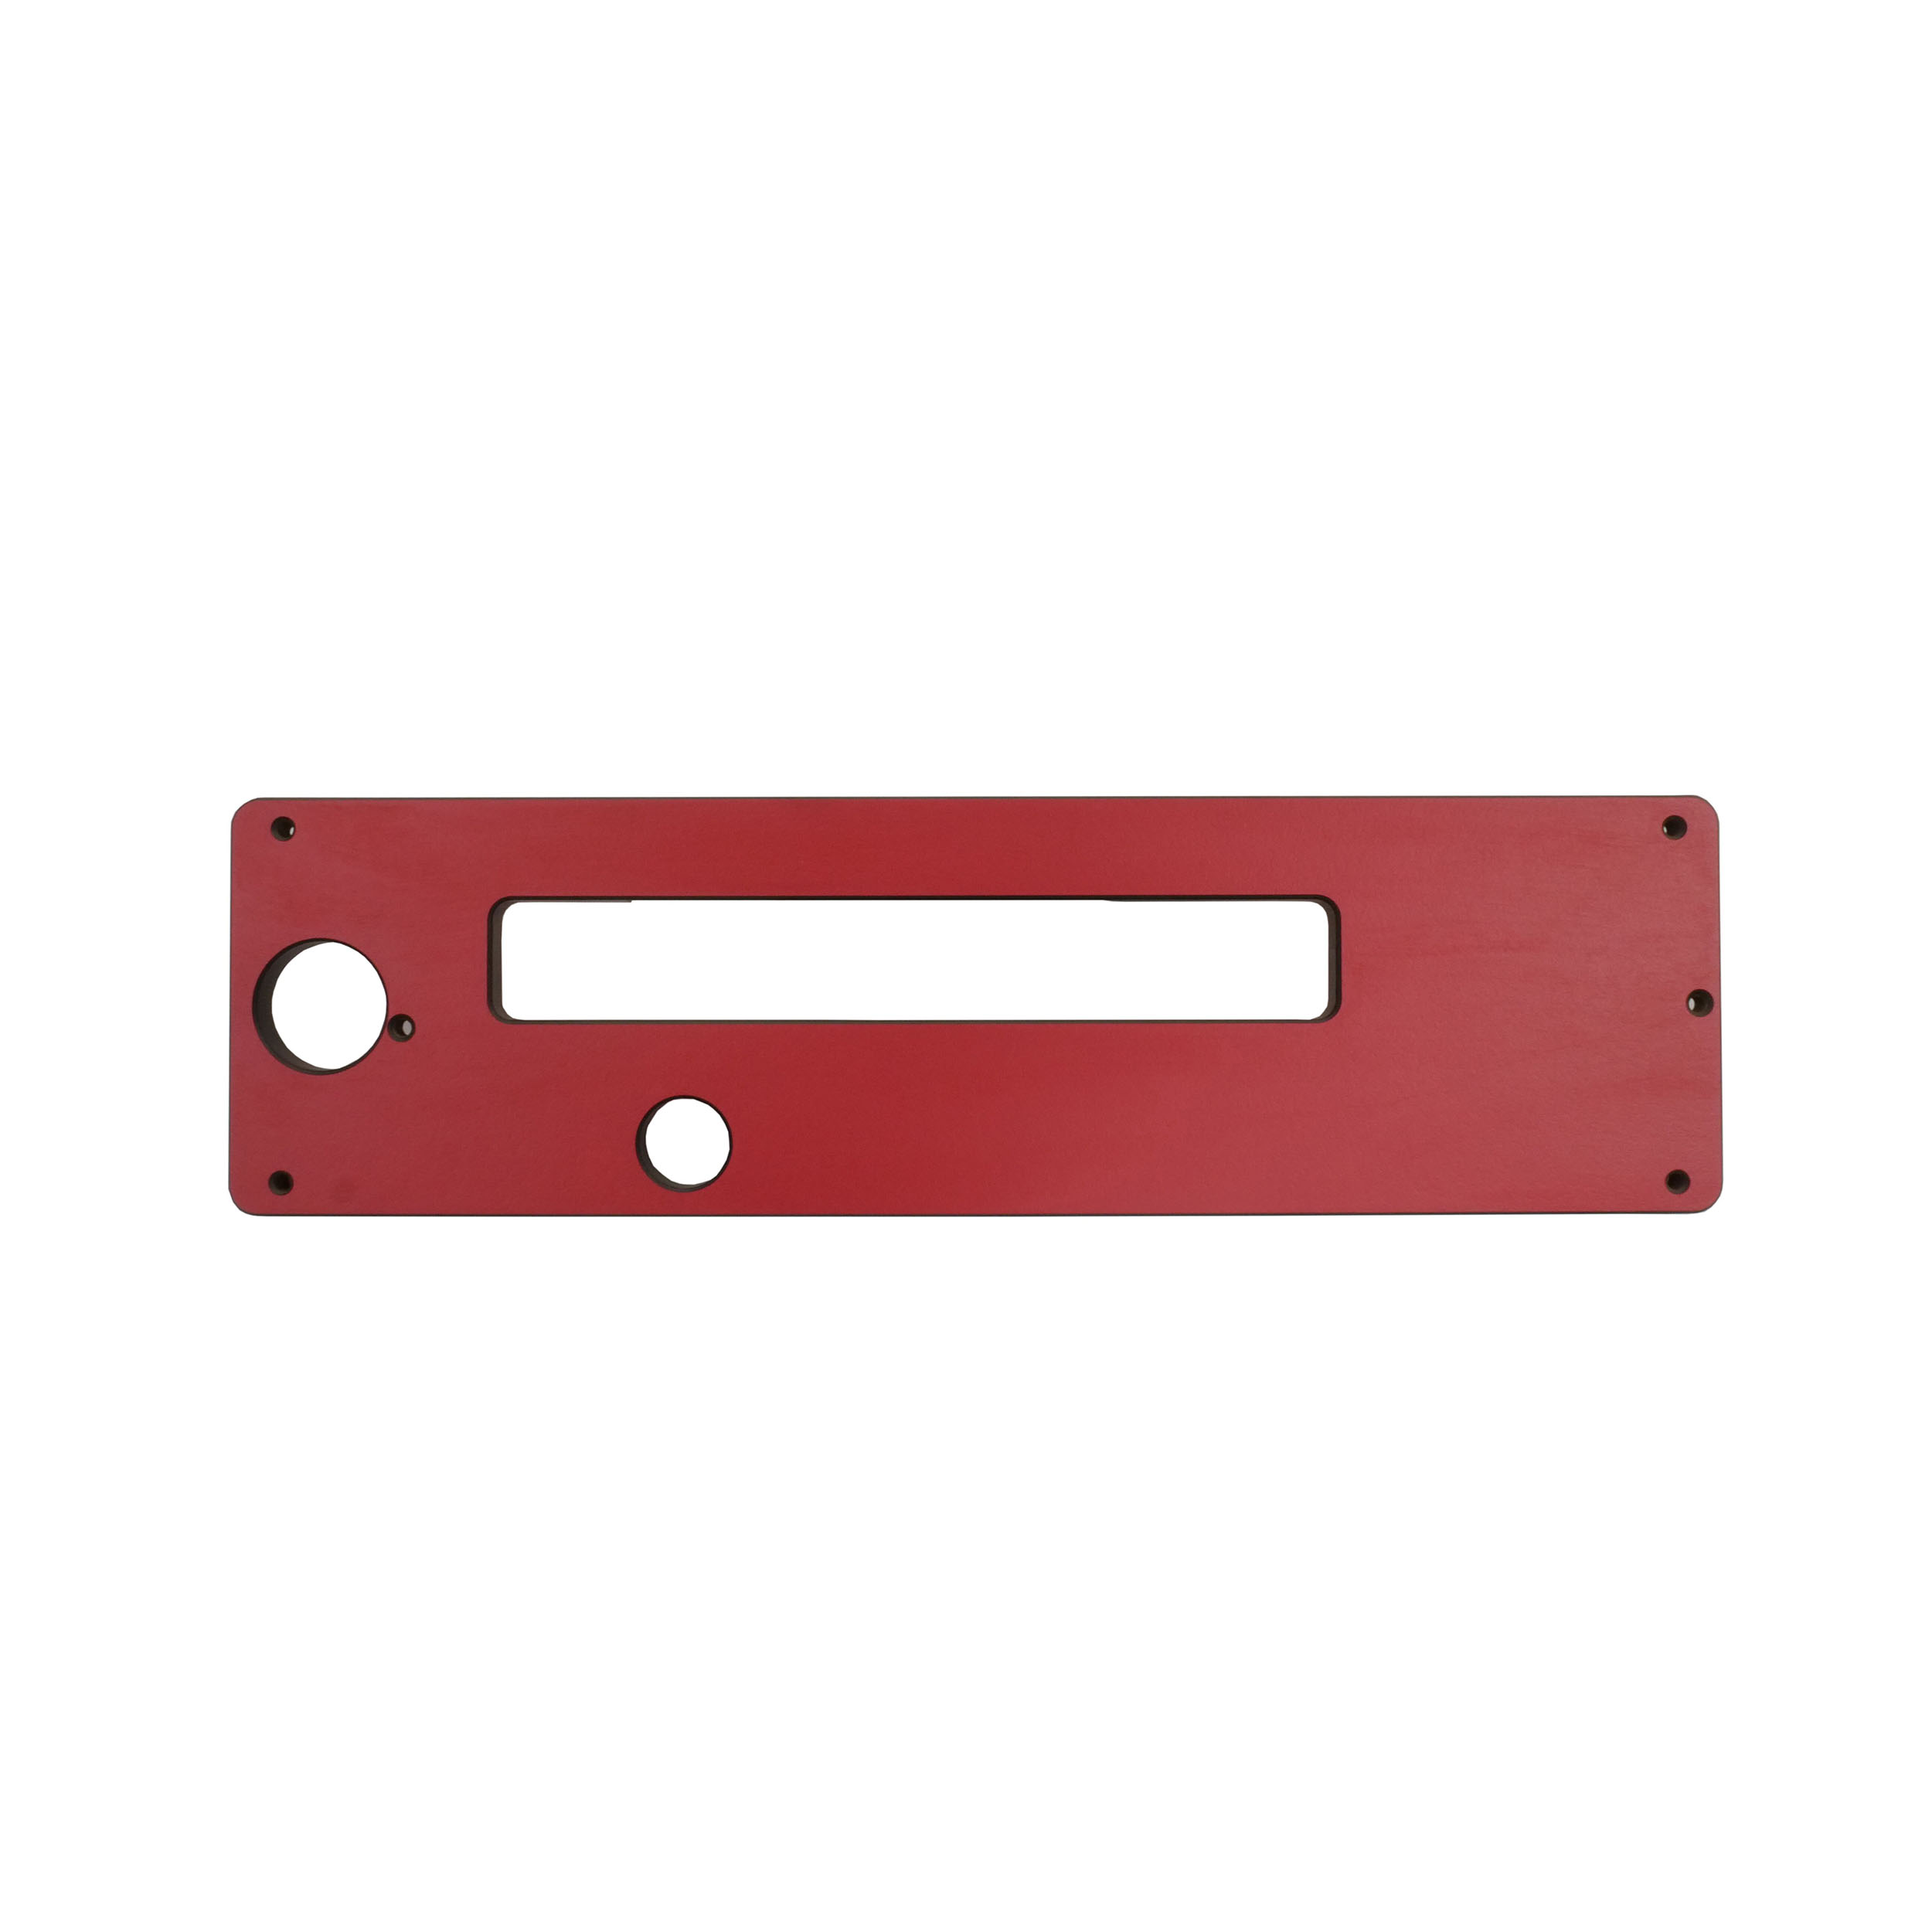 Dado Insert for Fusion F2 or F3 Table Saws